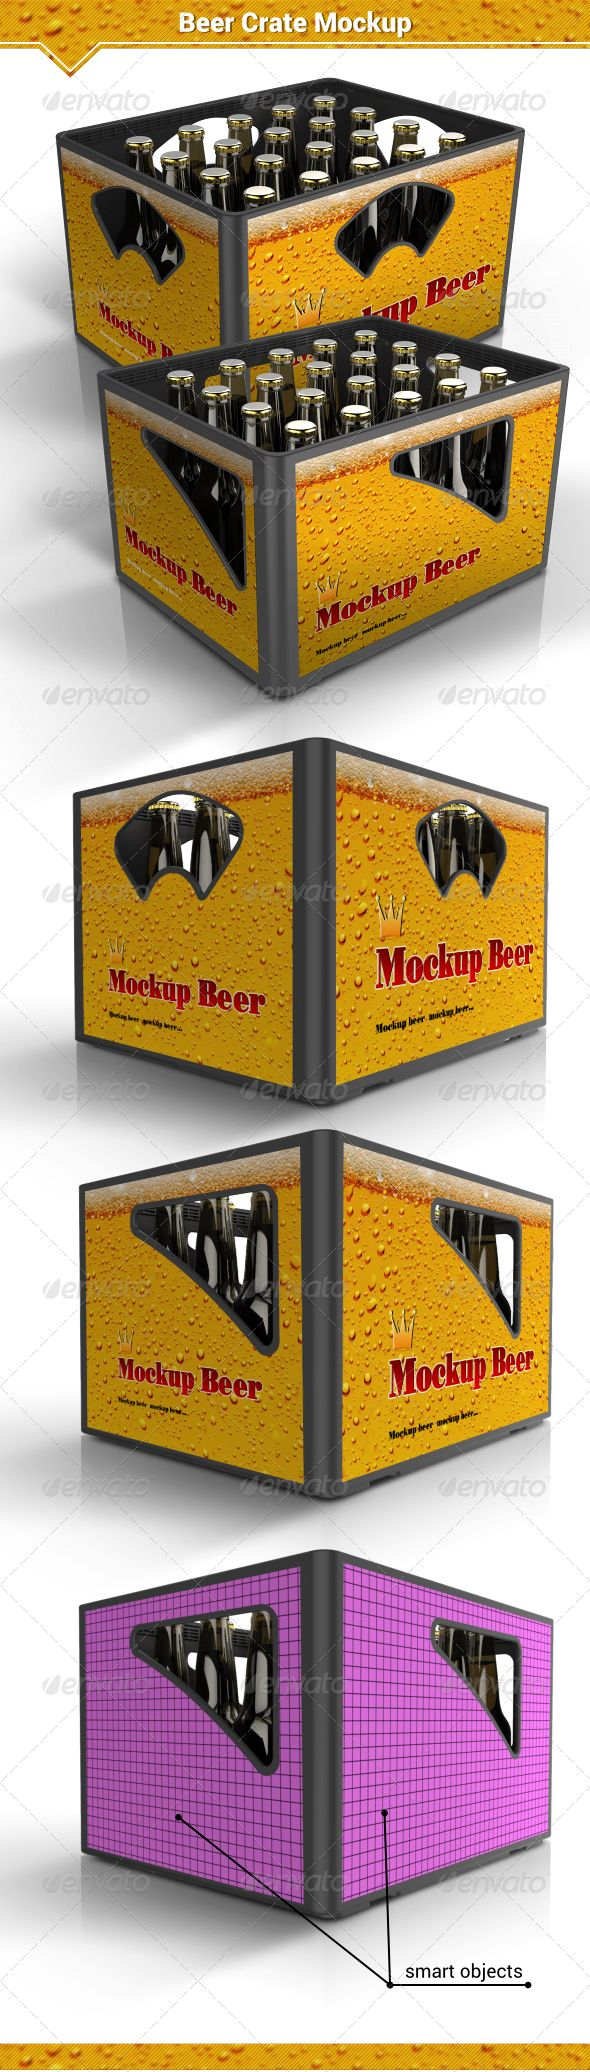 Download Beer Crate Mockup